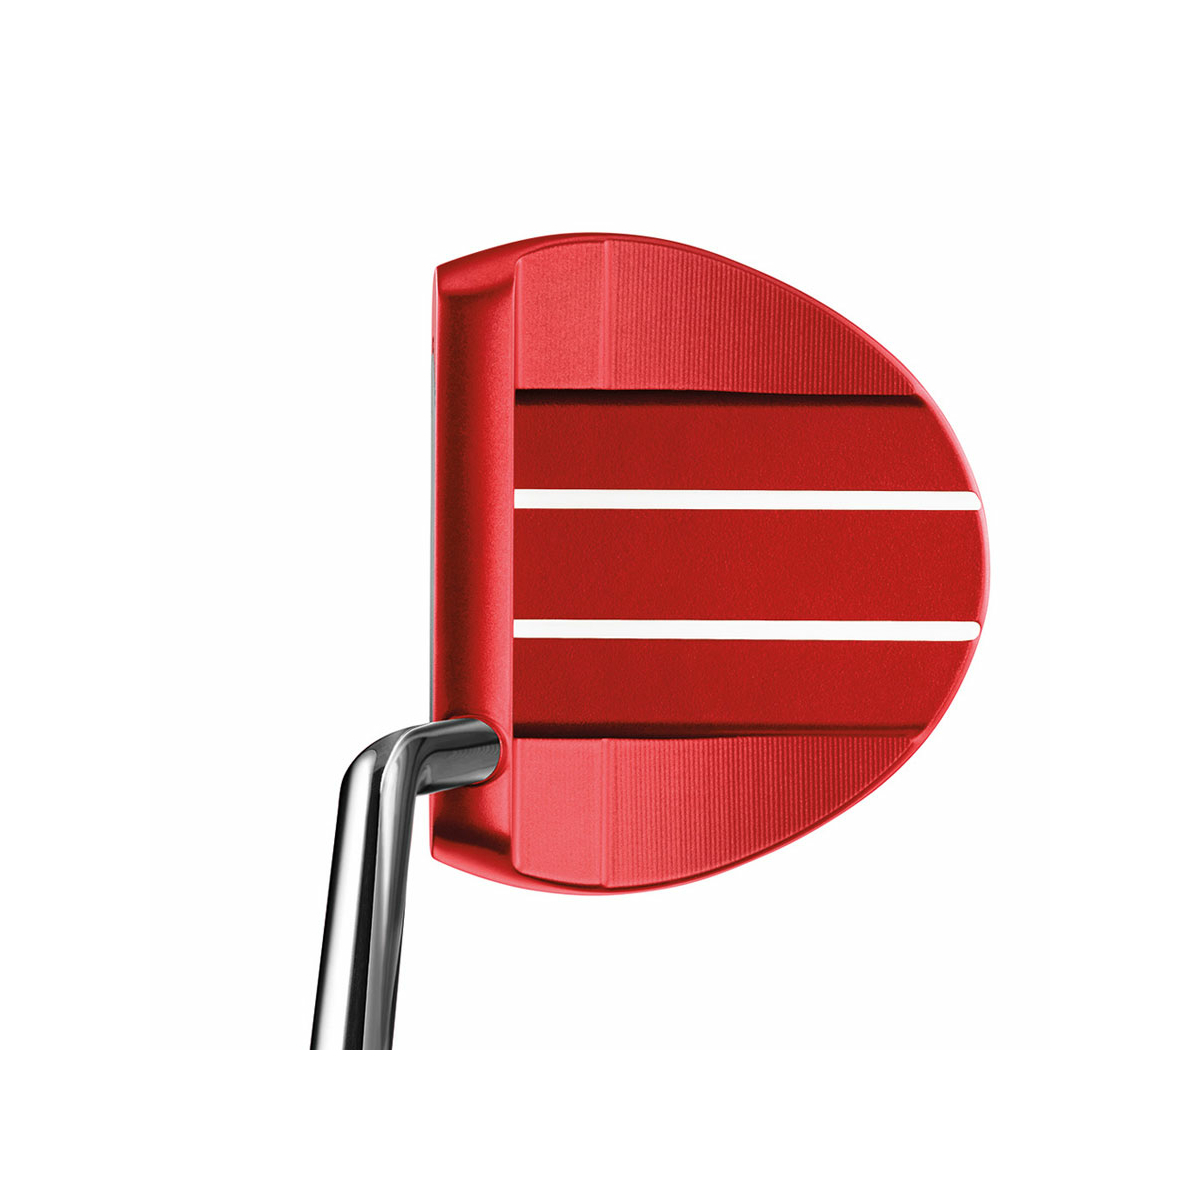 TaylorMade Golf TP Red Putter Chaska 35 Inch